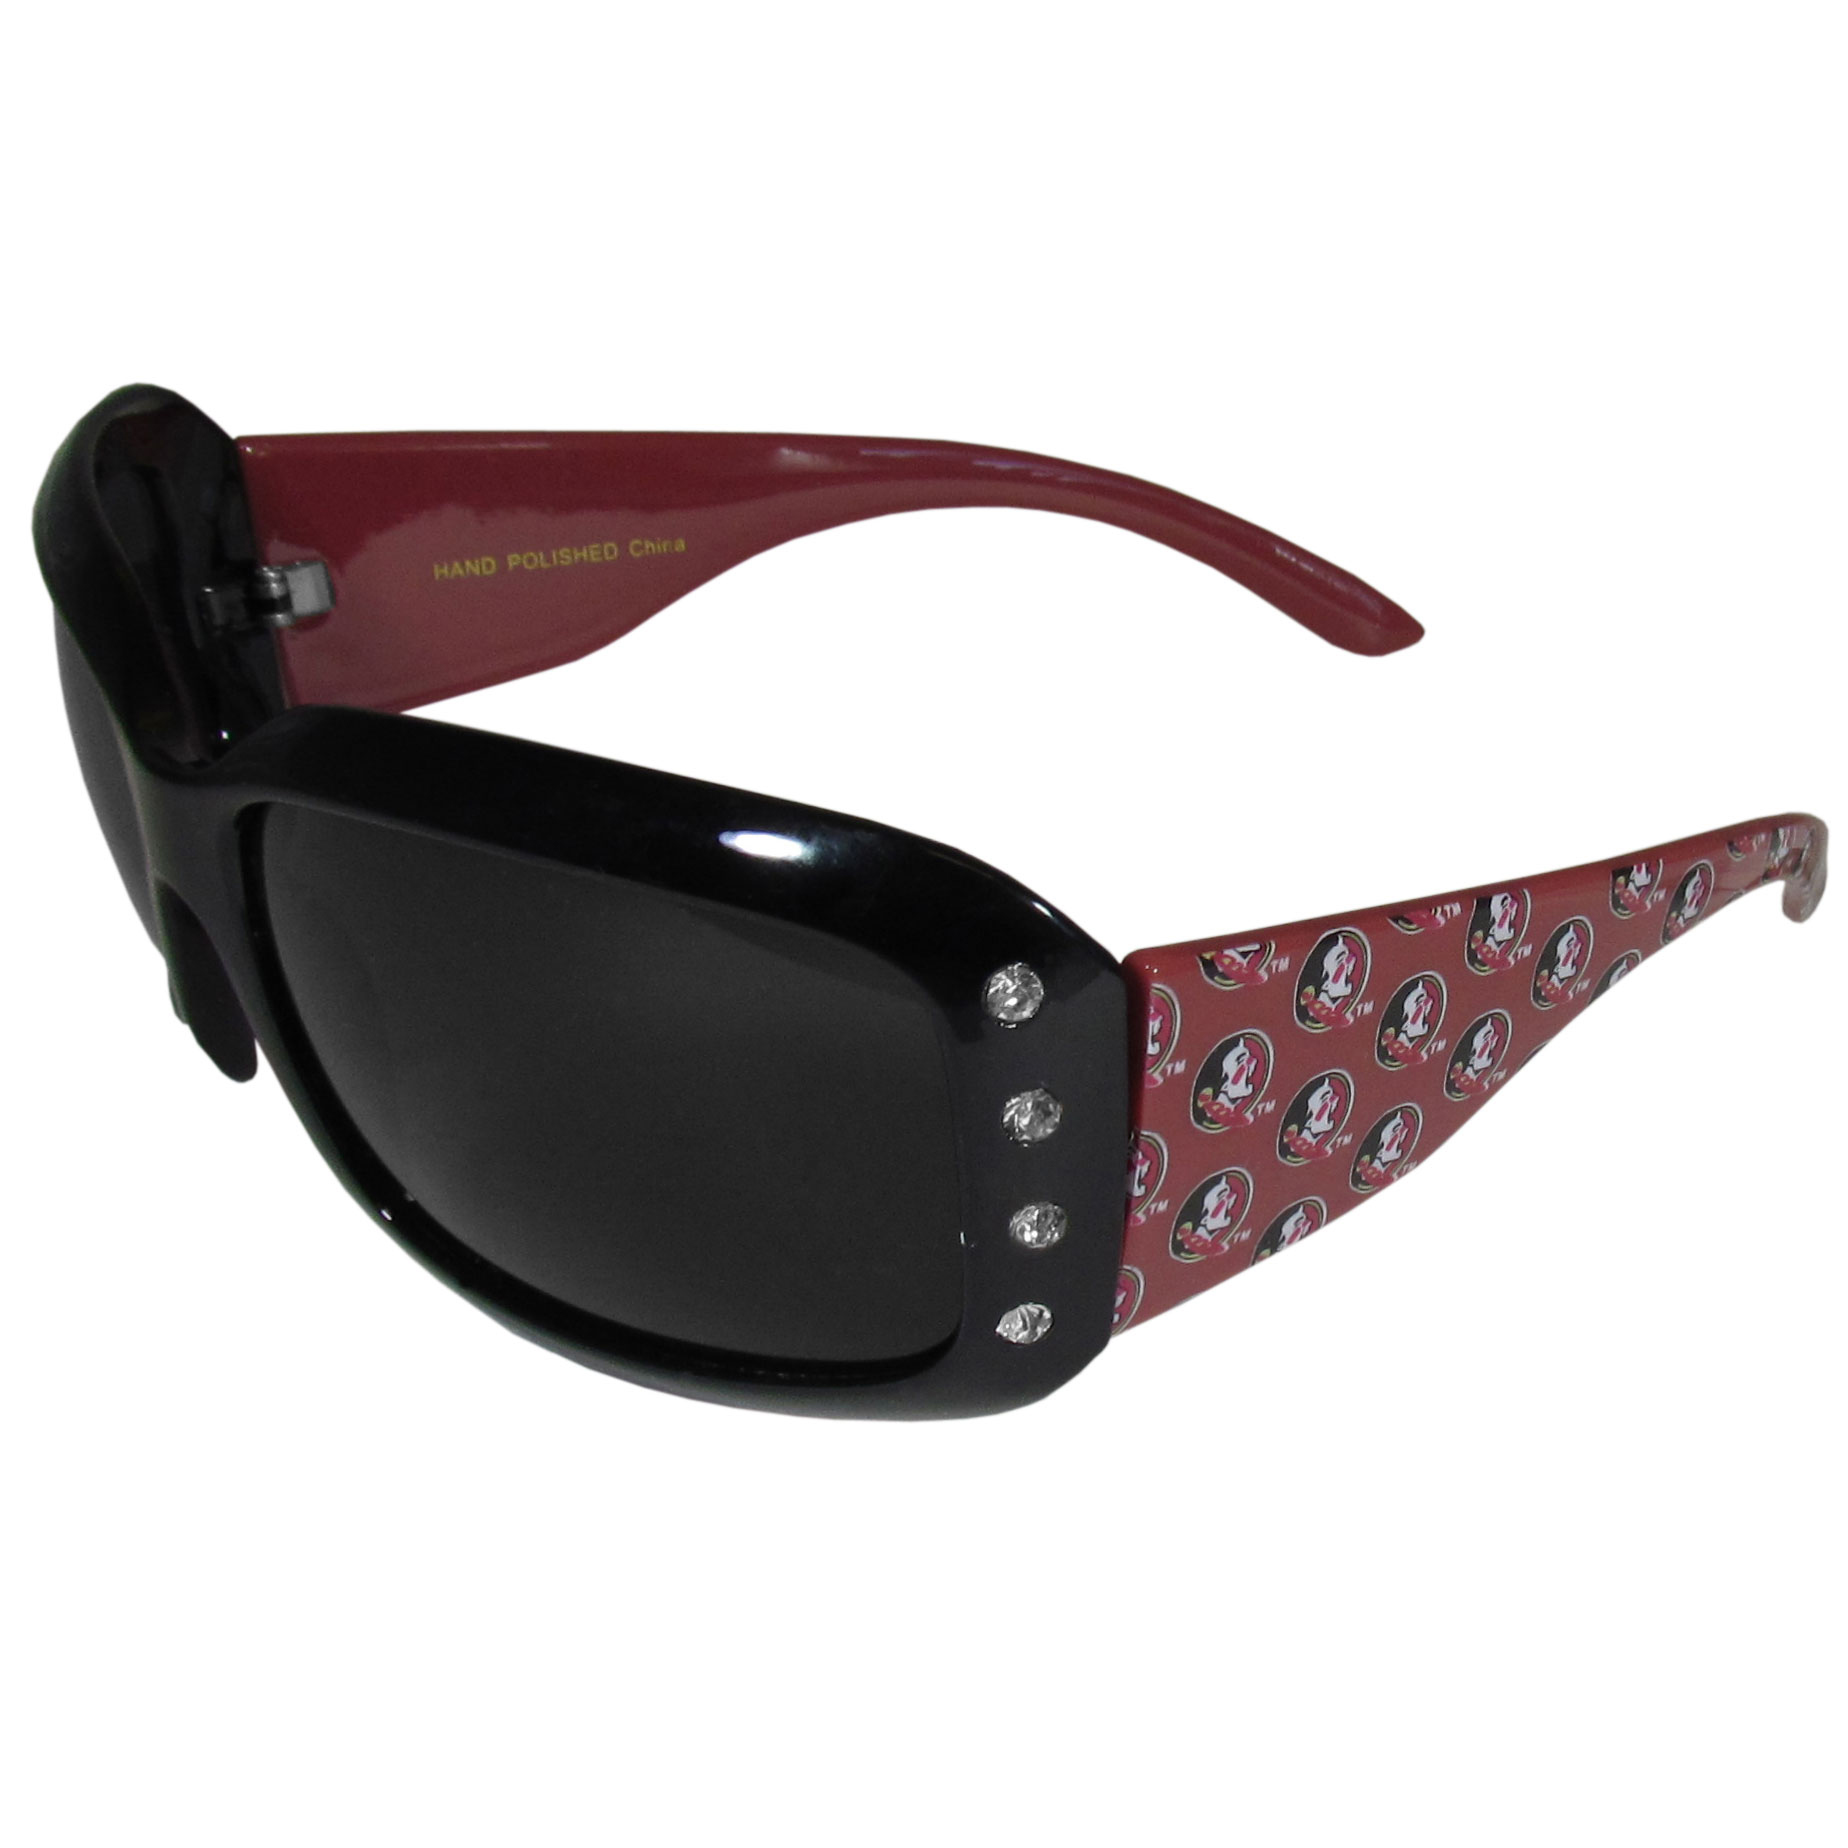 Florida St. Seminoles Designer Women's Sunglasses - Our designer women's sunglasses have a repeating Florida St. Seminoles logo design on the team colored arms and rhinestone accents. 100% UVA/UVB protection.